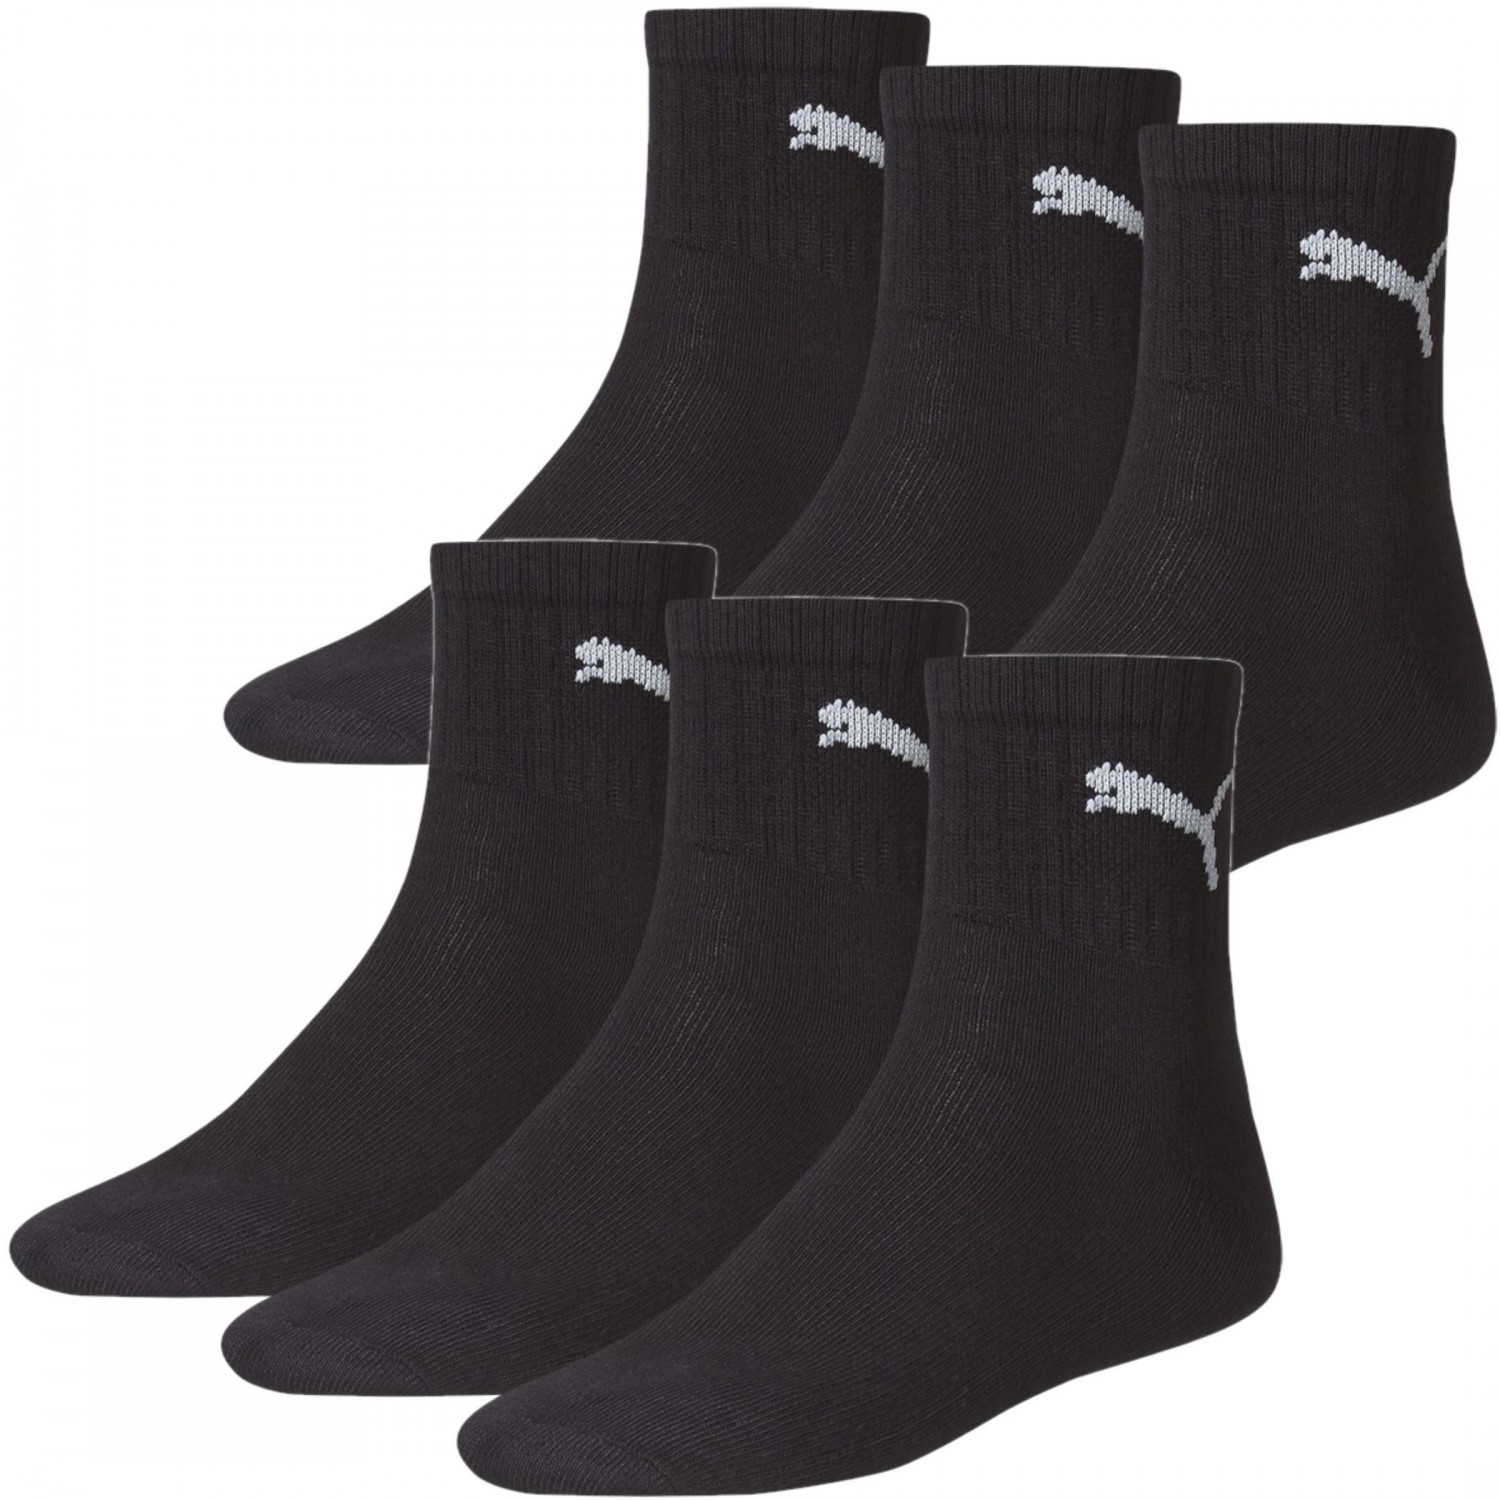 6 paar puma socken str mpfe schwarz geeignet f r sport. Black Bedroom Furniture Sets. Home Design Ideas